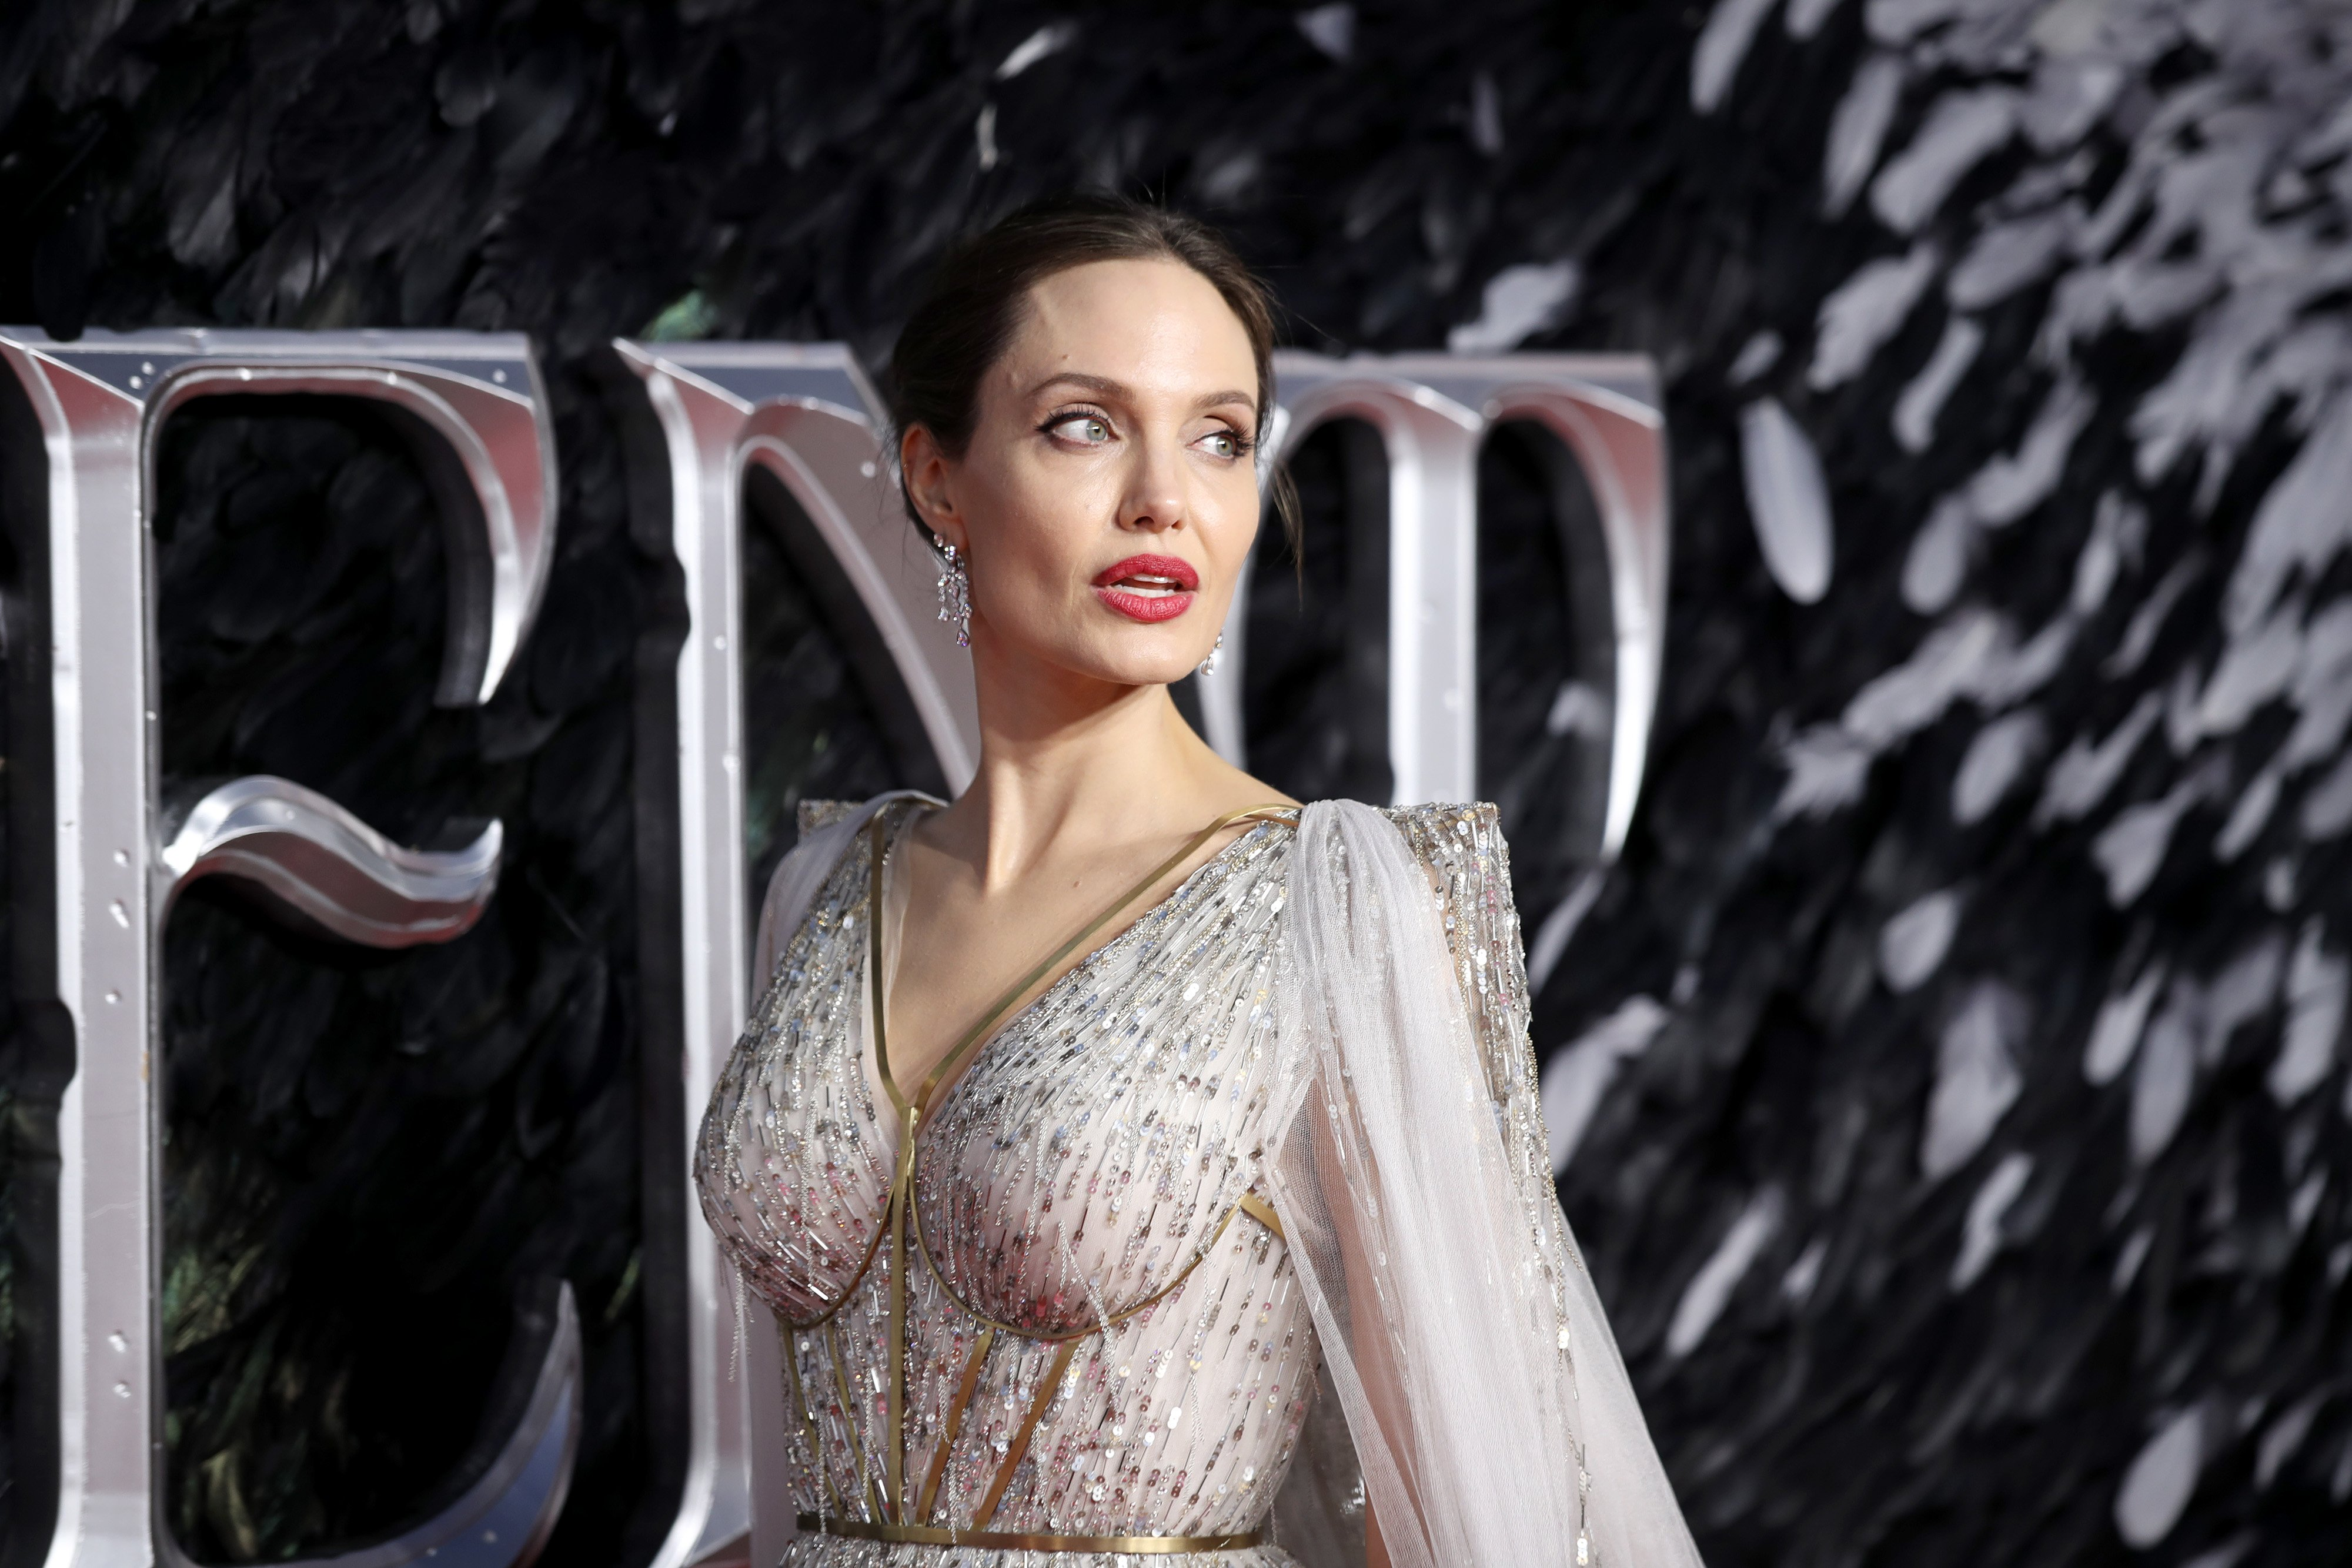 Image Source: Getty Images/Angelina in her movie event: Maleficent